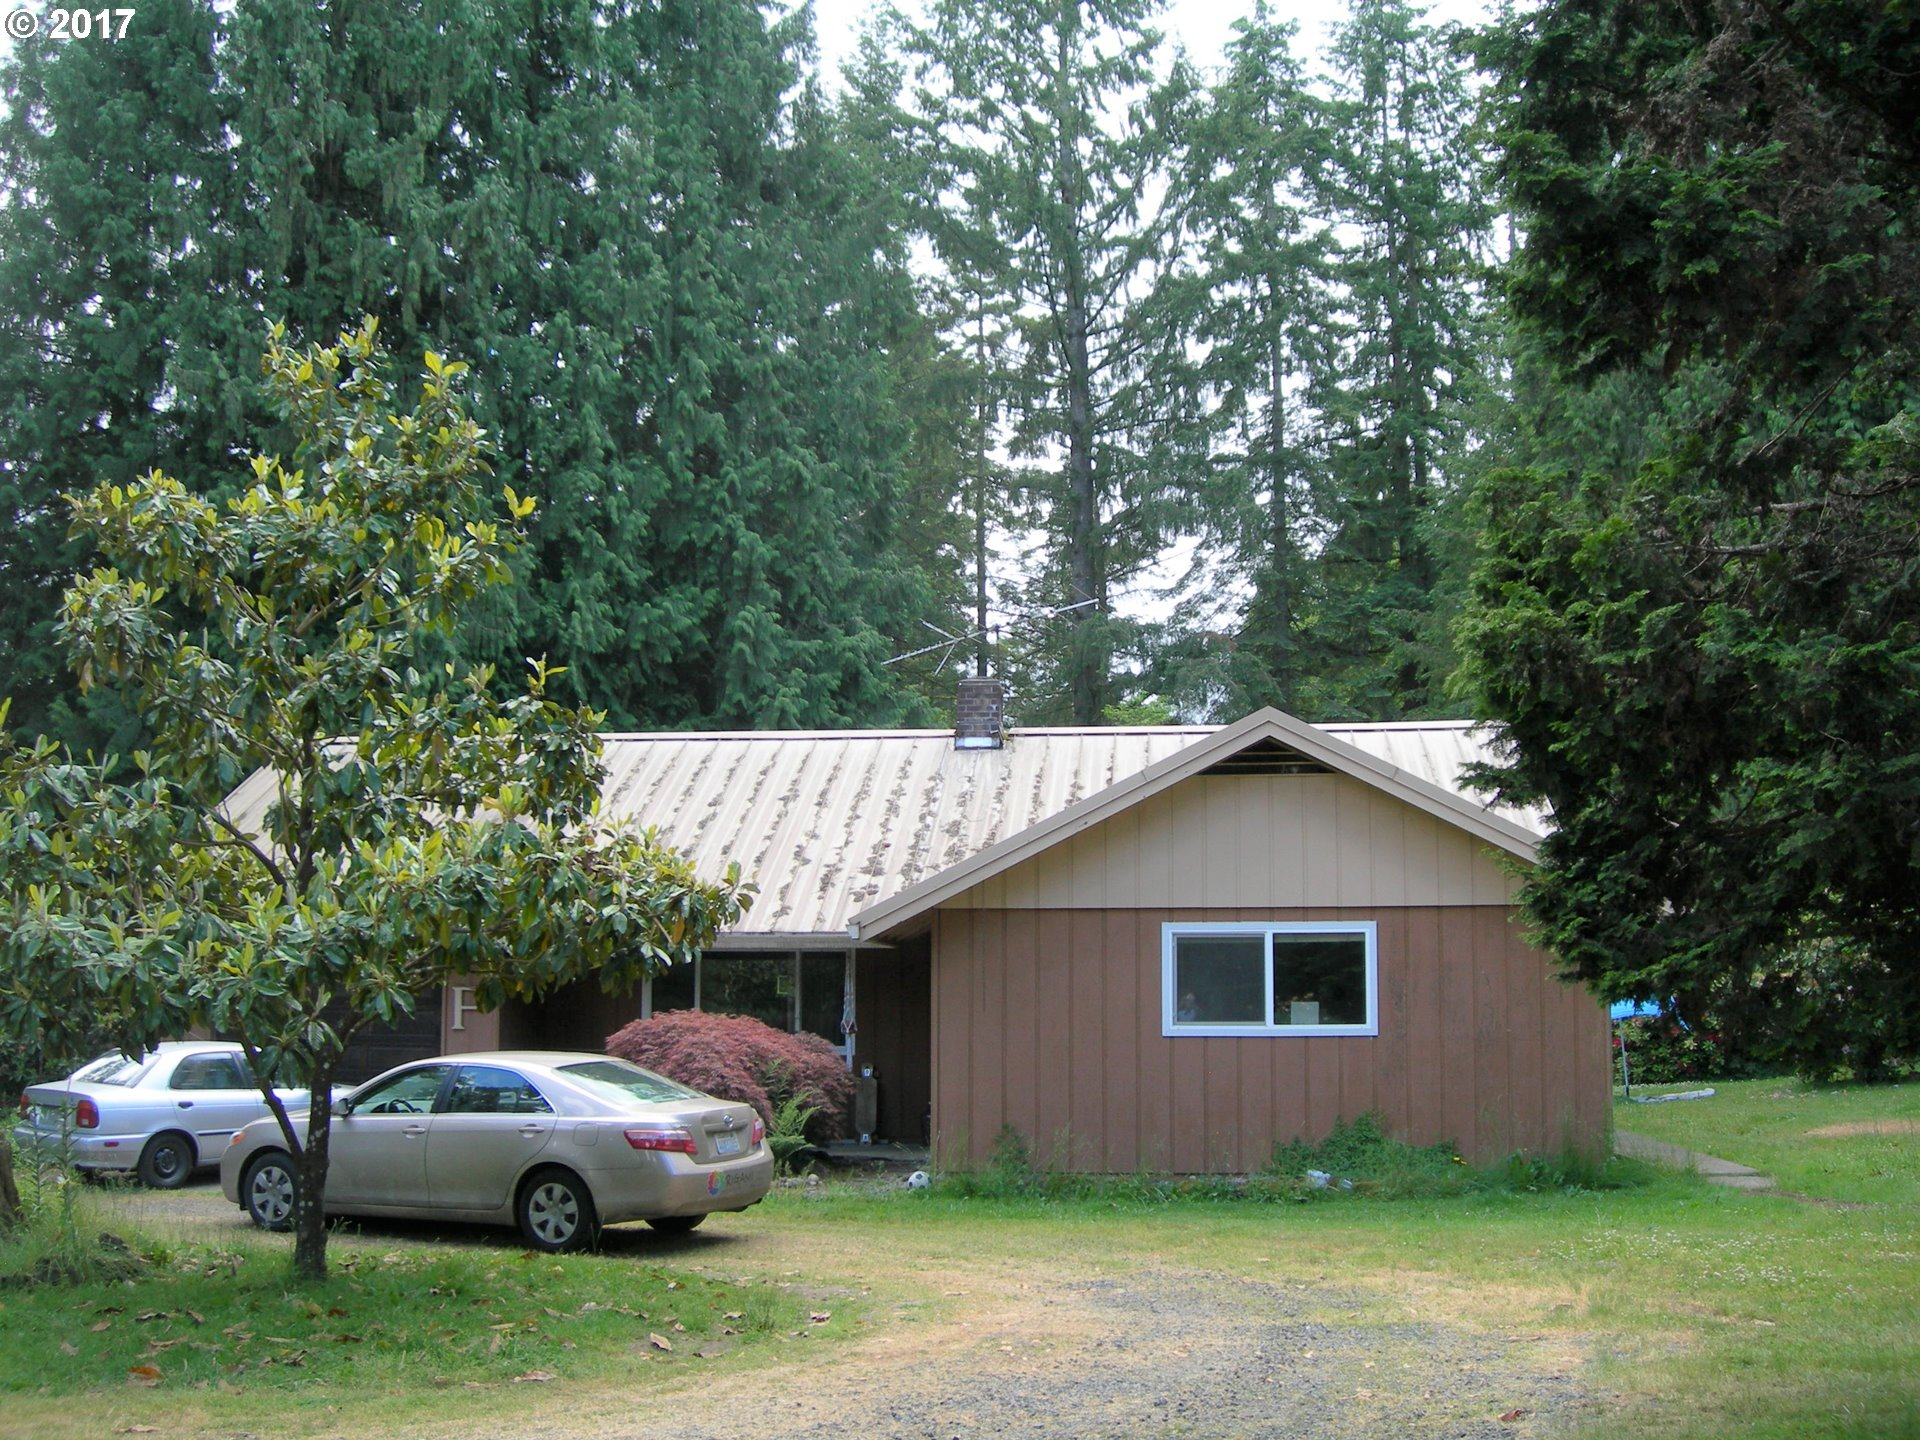 15614 NW 11TH AVE Vancouver, WA 98685 - MLS #: 17564739